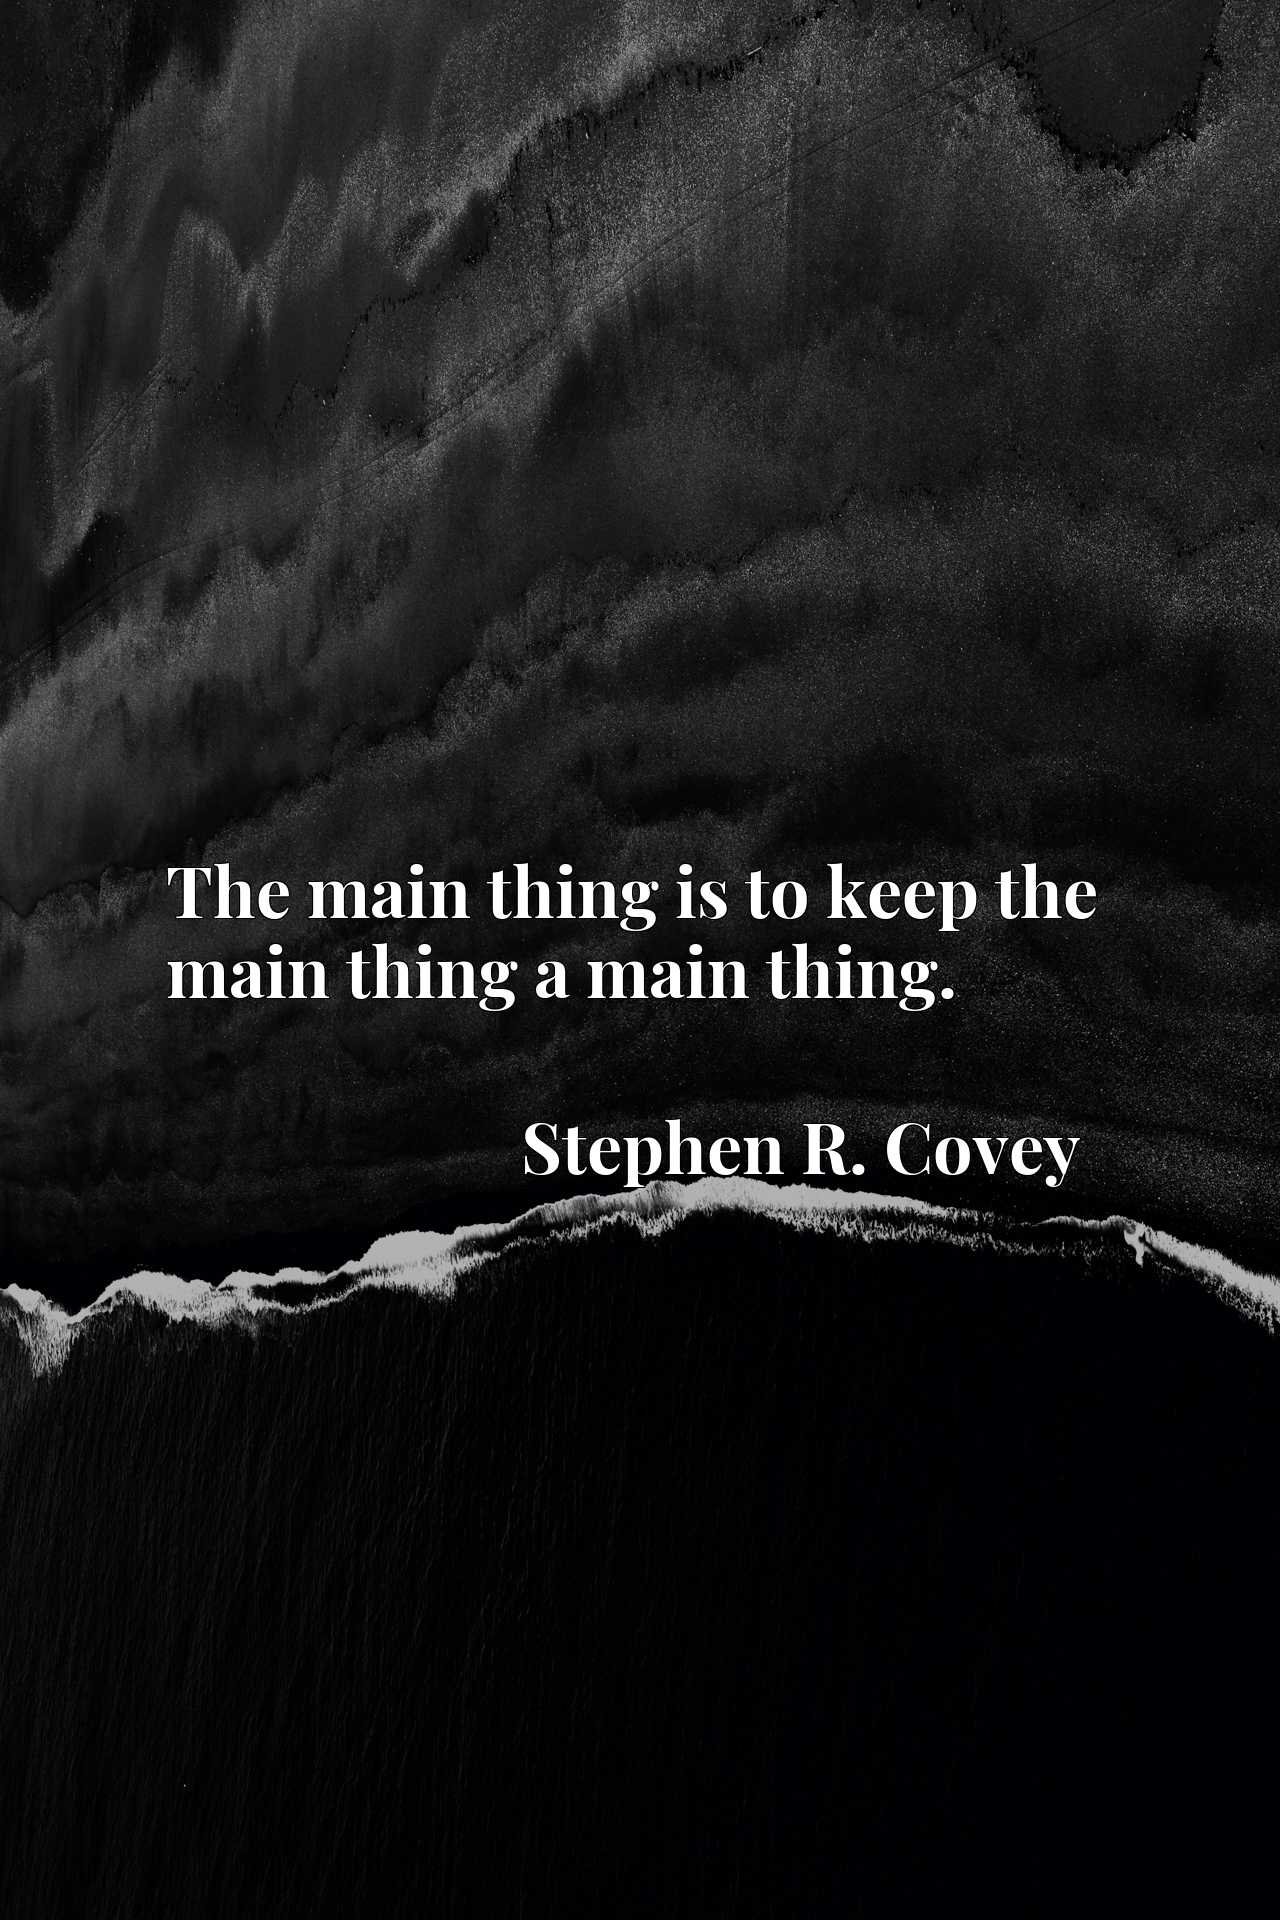 The main thing is to keep the main thing a main thing.